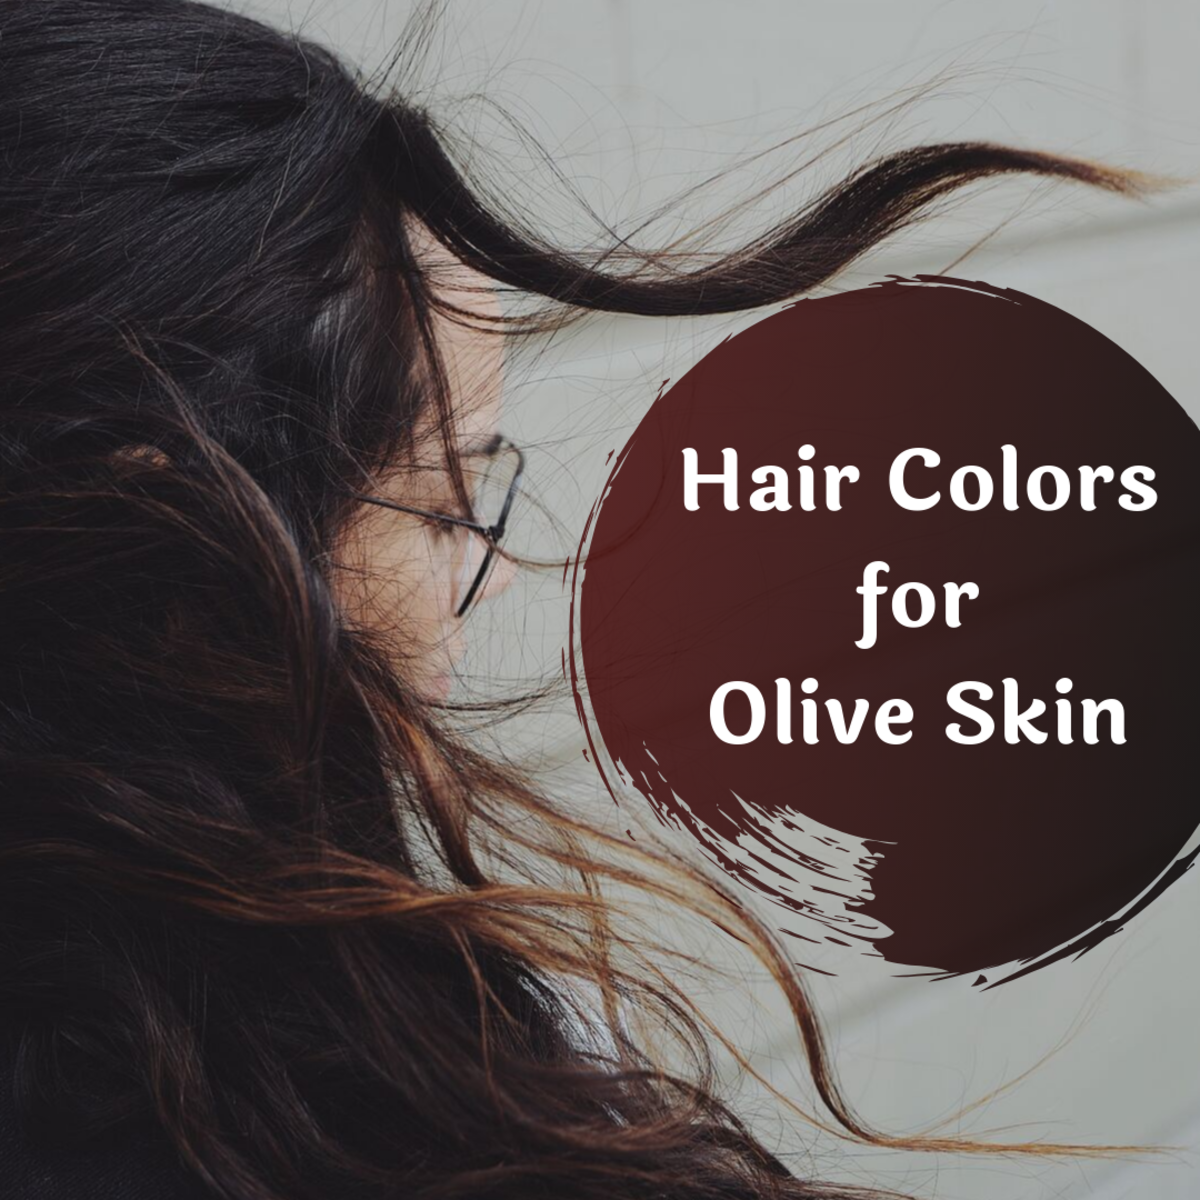 Get some ideas for hair colors to pair with an olive complexion, and view celebrity photos.